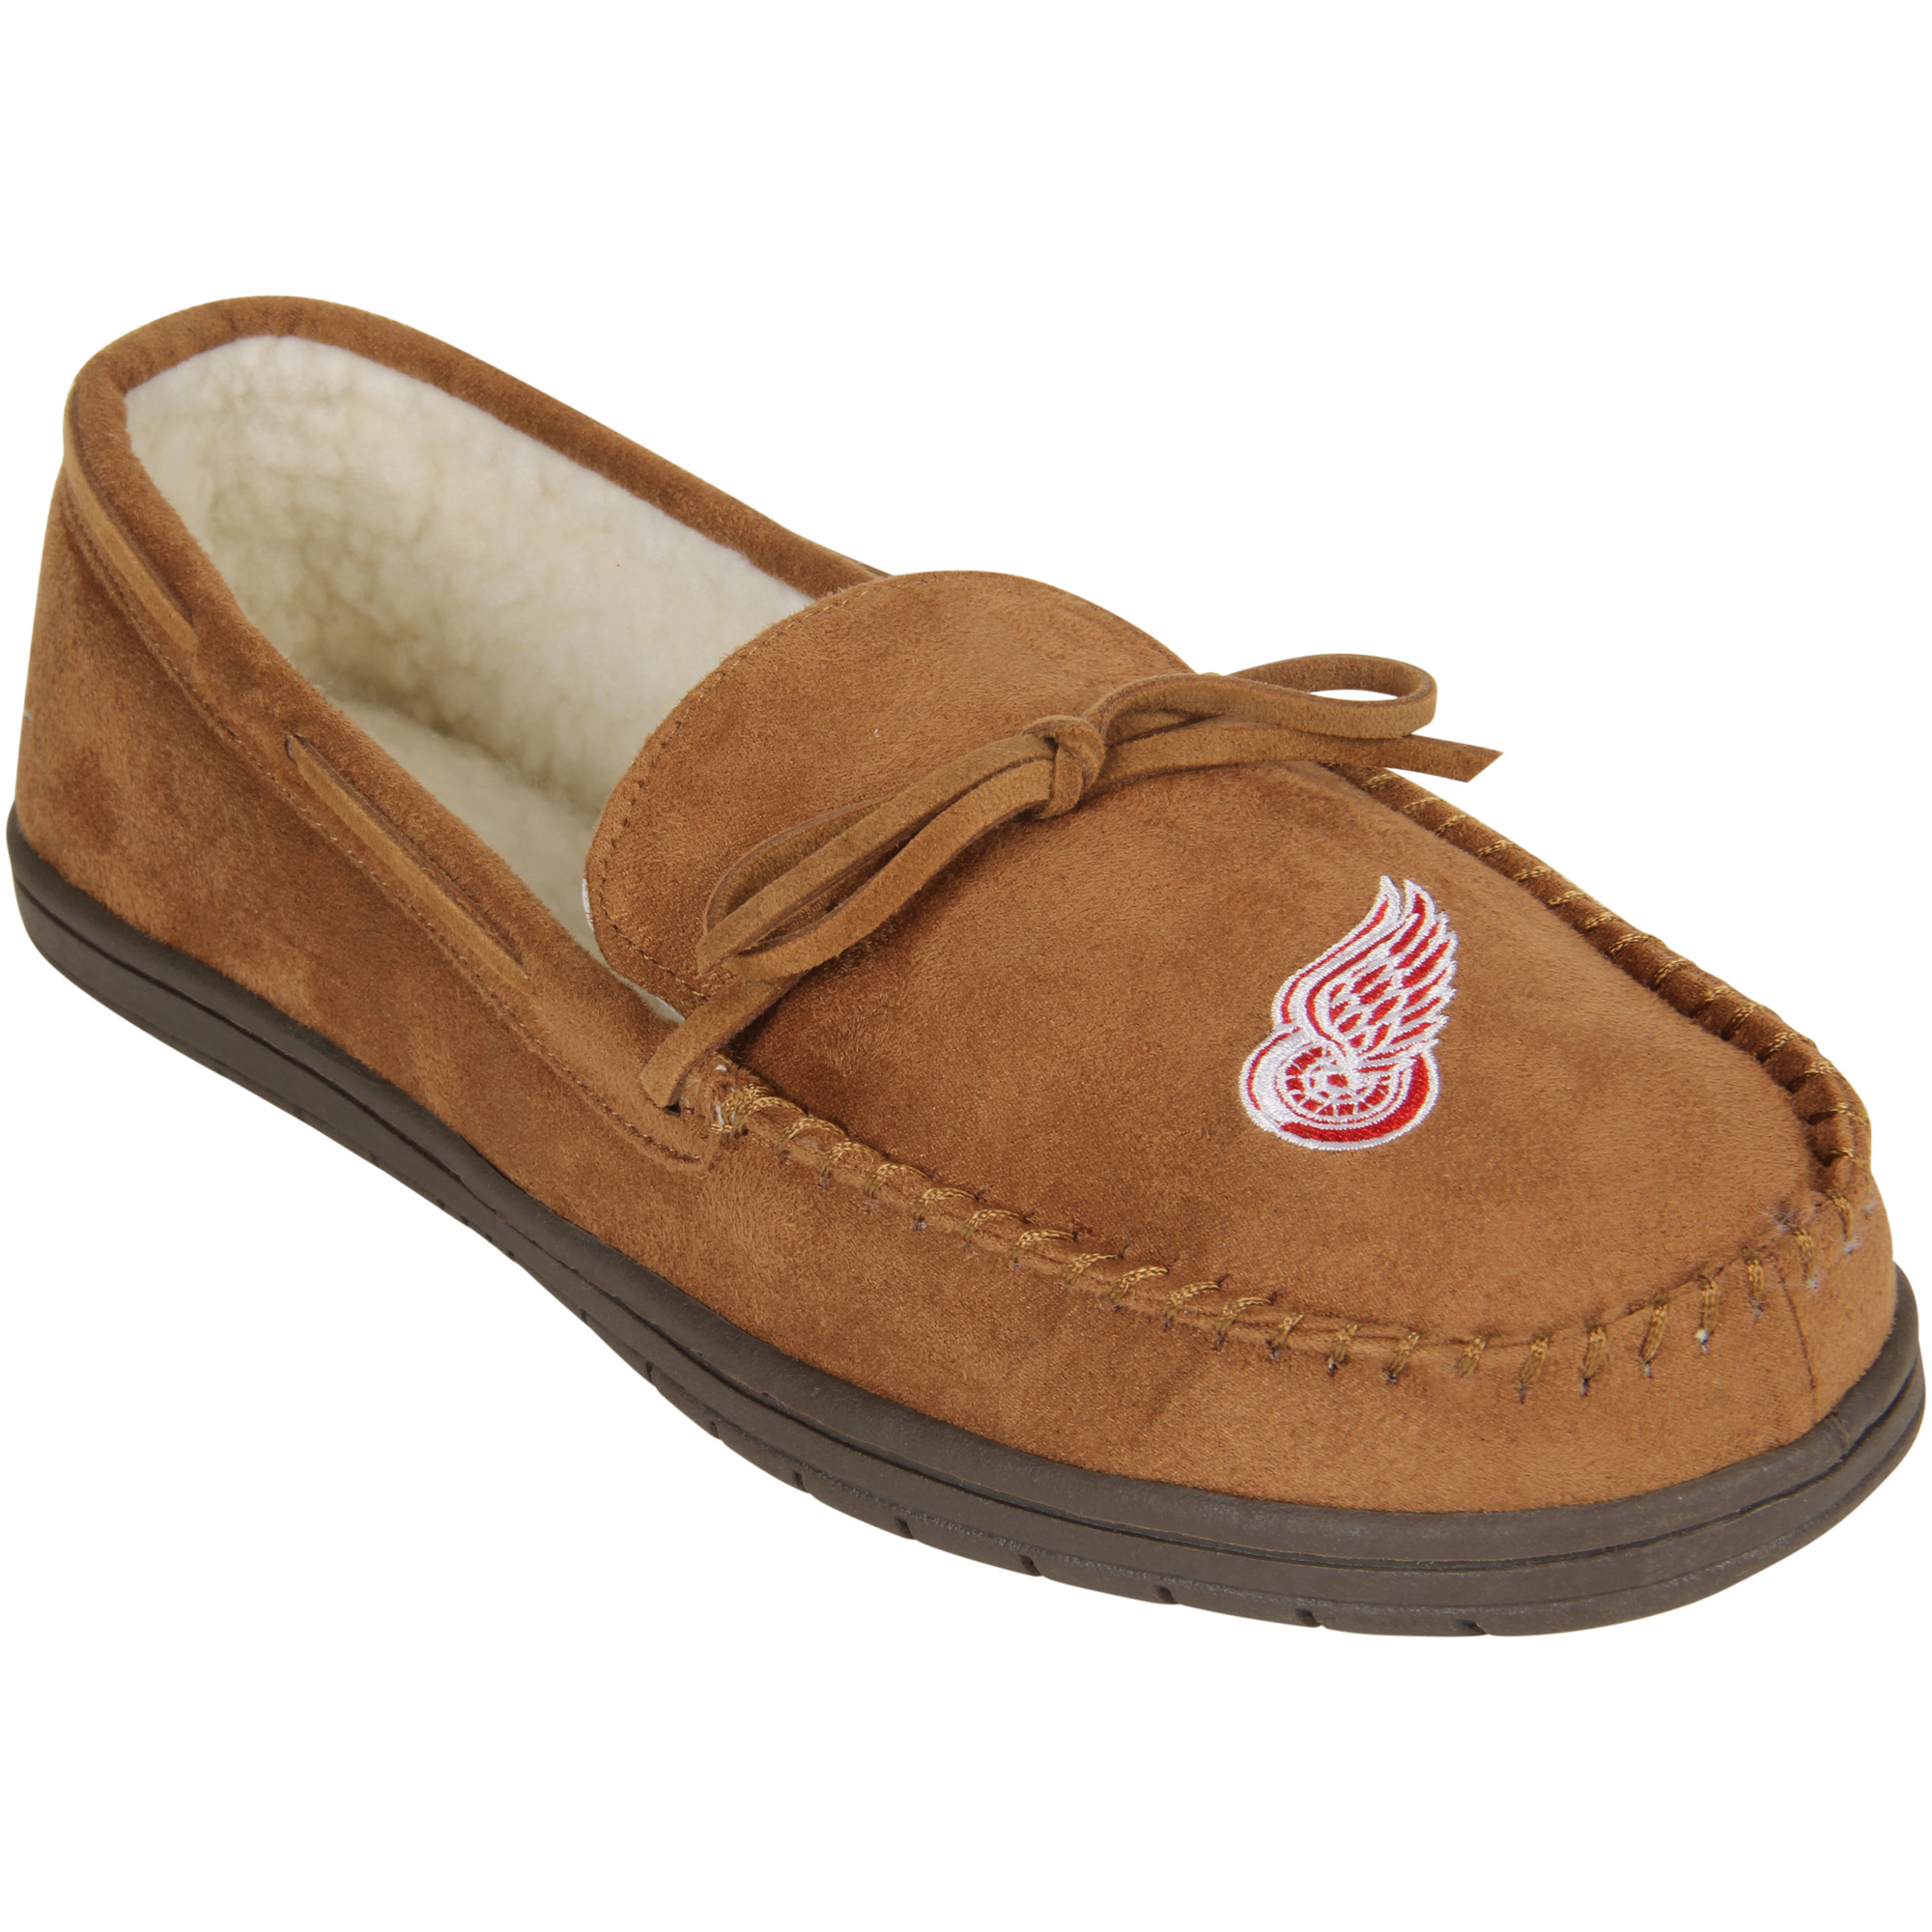 Detroit Red Wings Moccasin Slippers